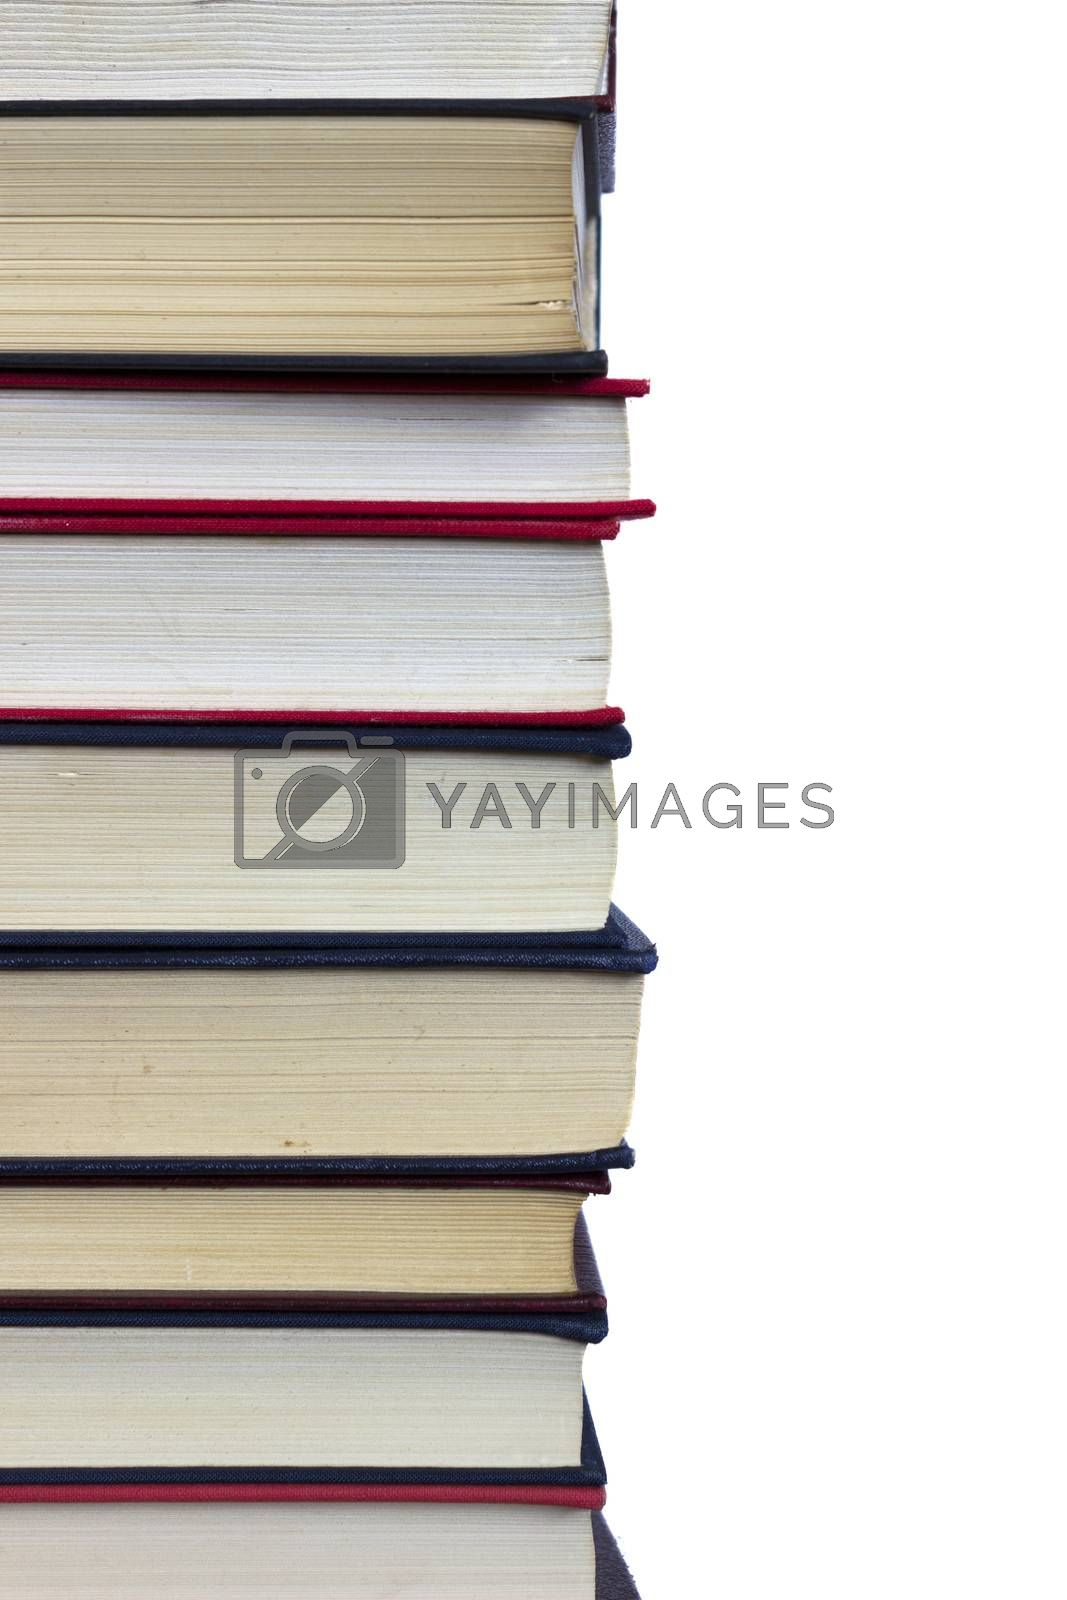 Stack of books on white background, partial view